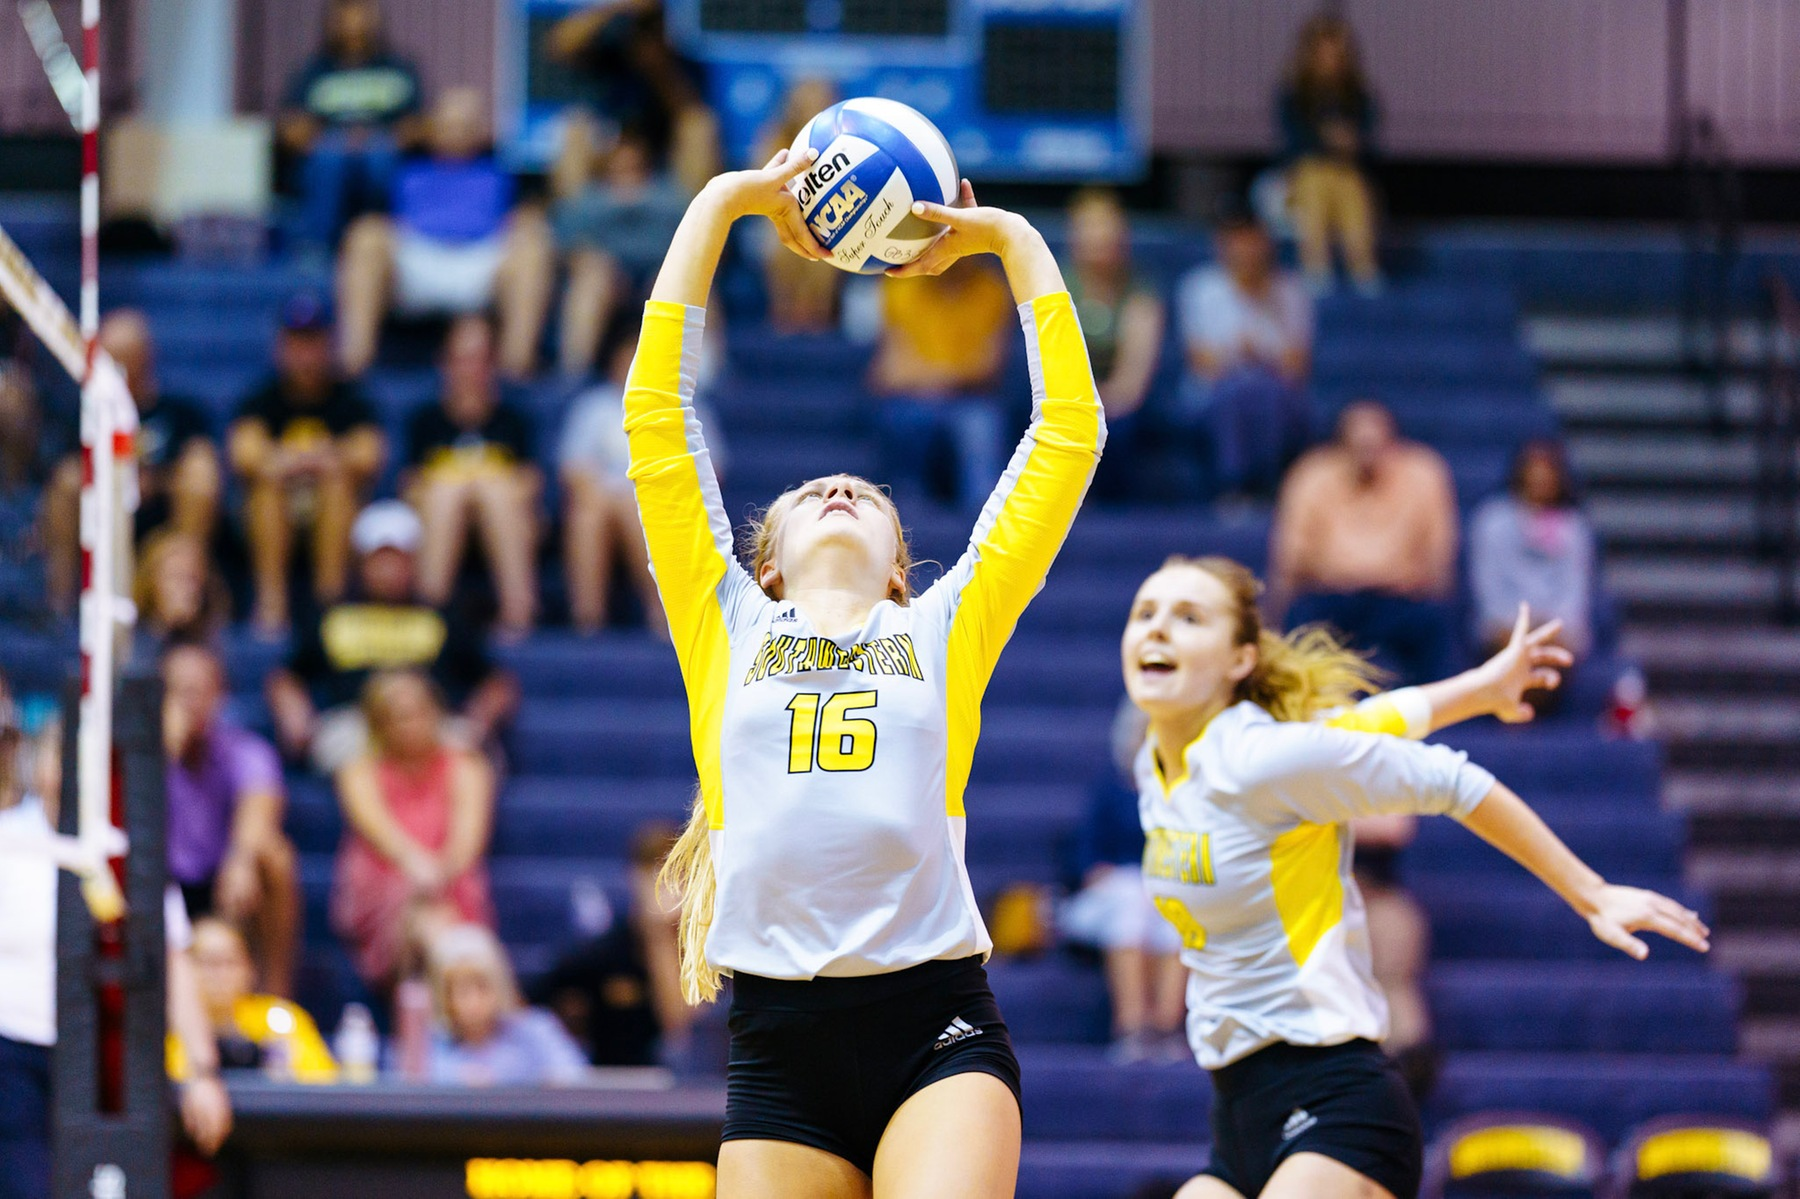 Volleyball Drops Second Match of the Day, Falls to Whitworth